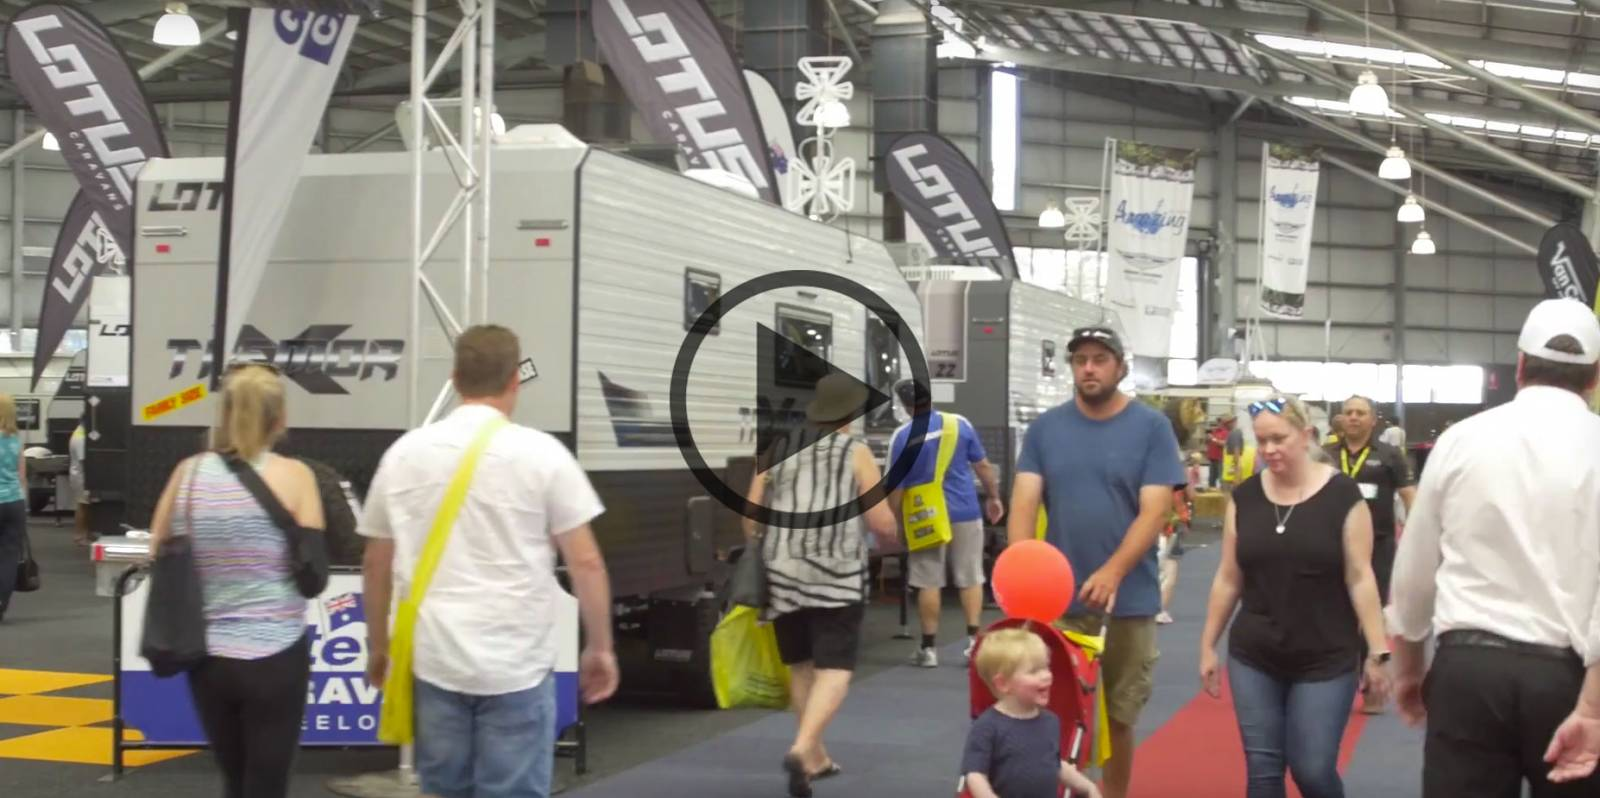 Head on down to the Victorian Supershow